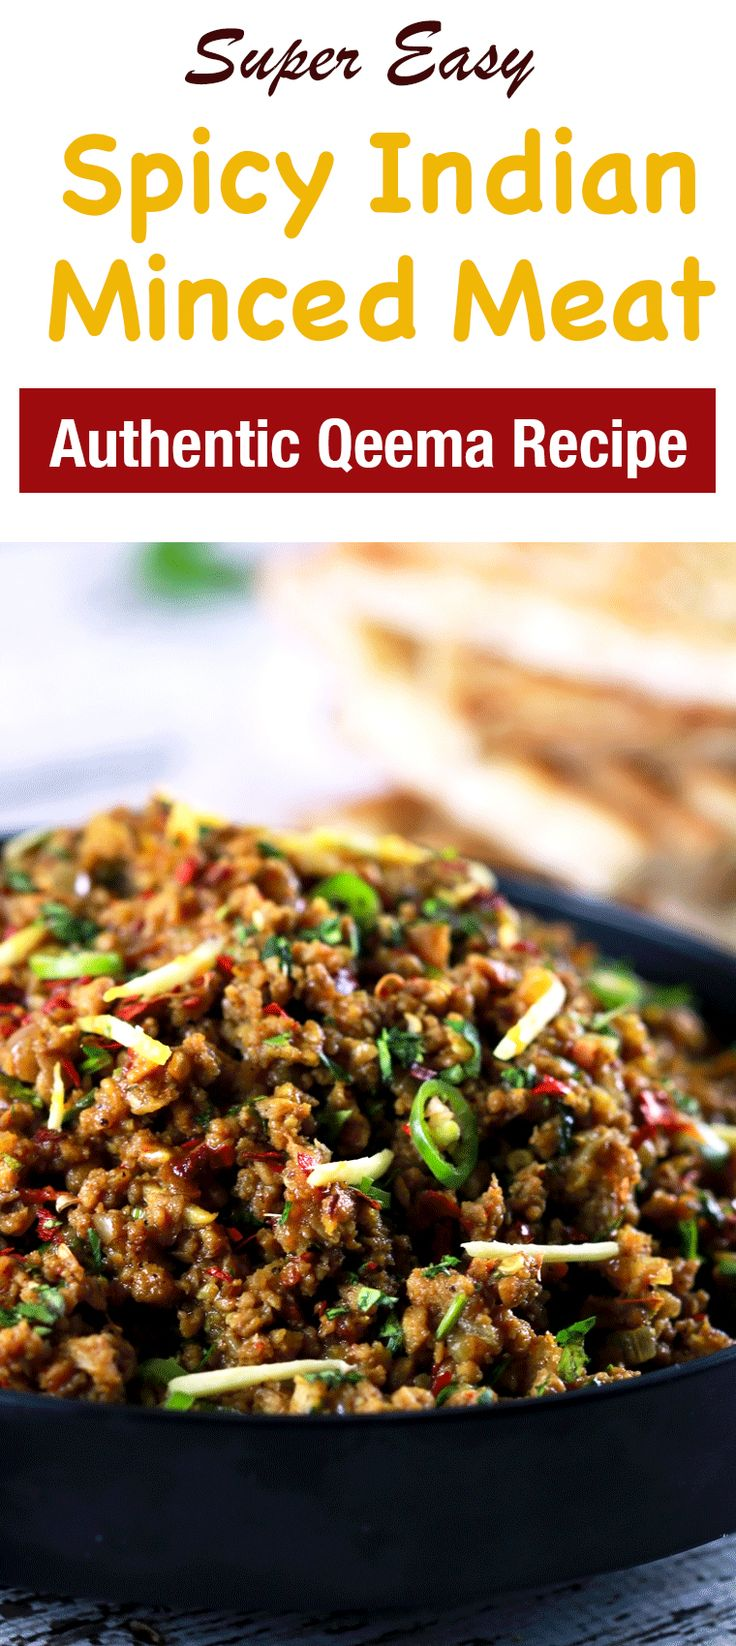 This CLASSIC authentic Indian minced meat Qeema recipe is so delicious, it'll become a regular at your house!!